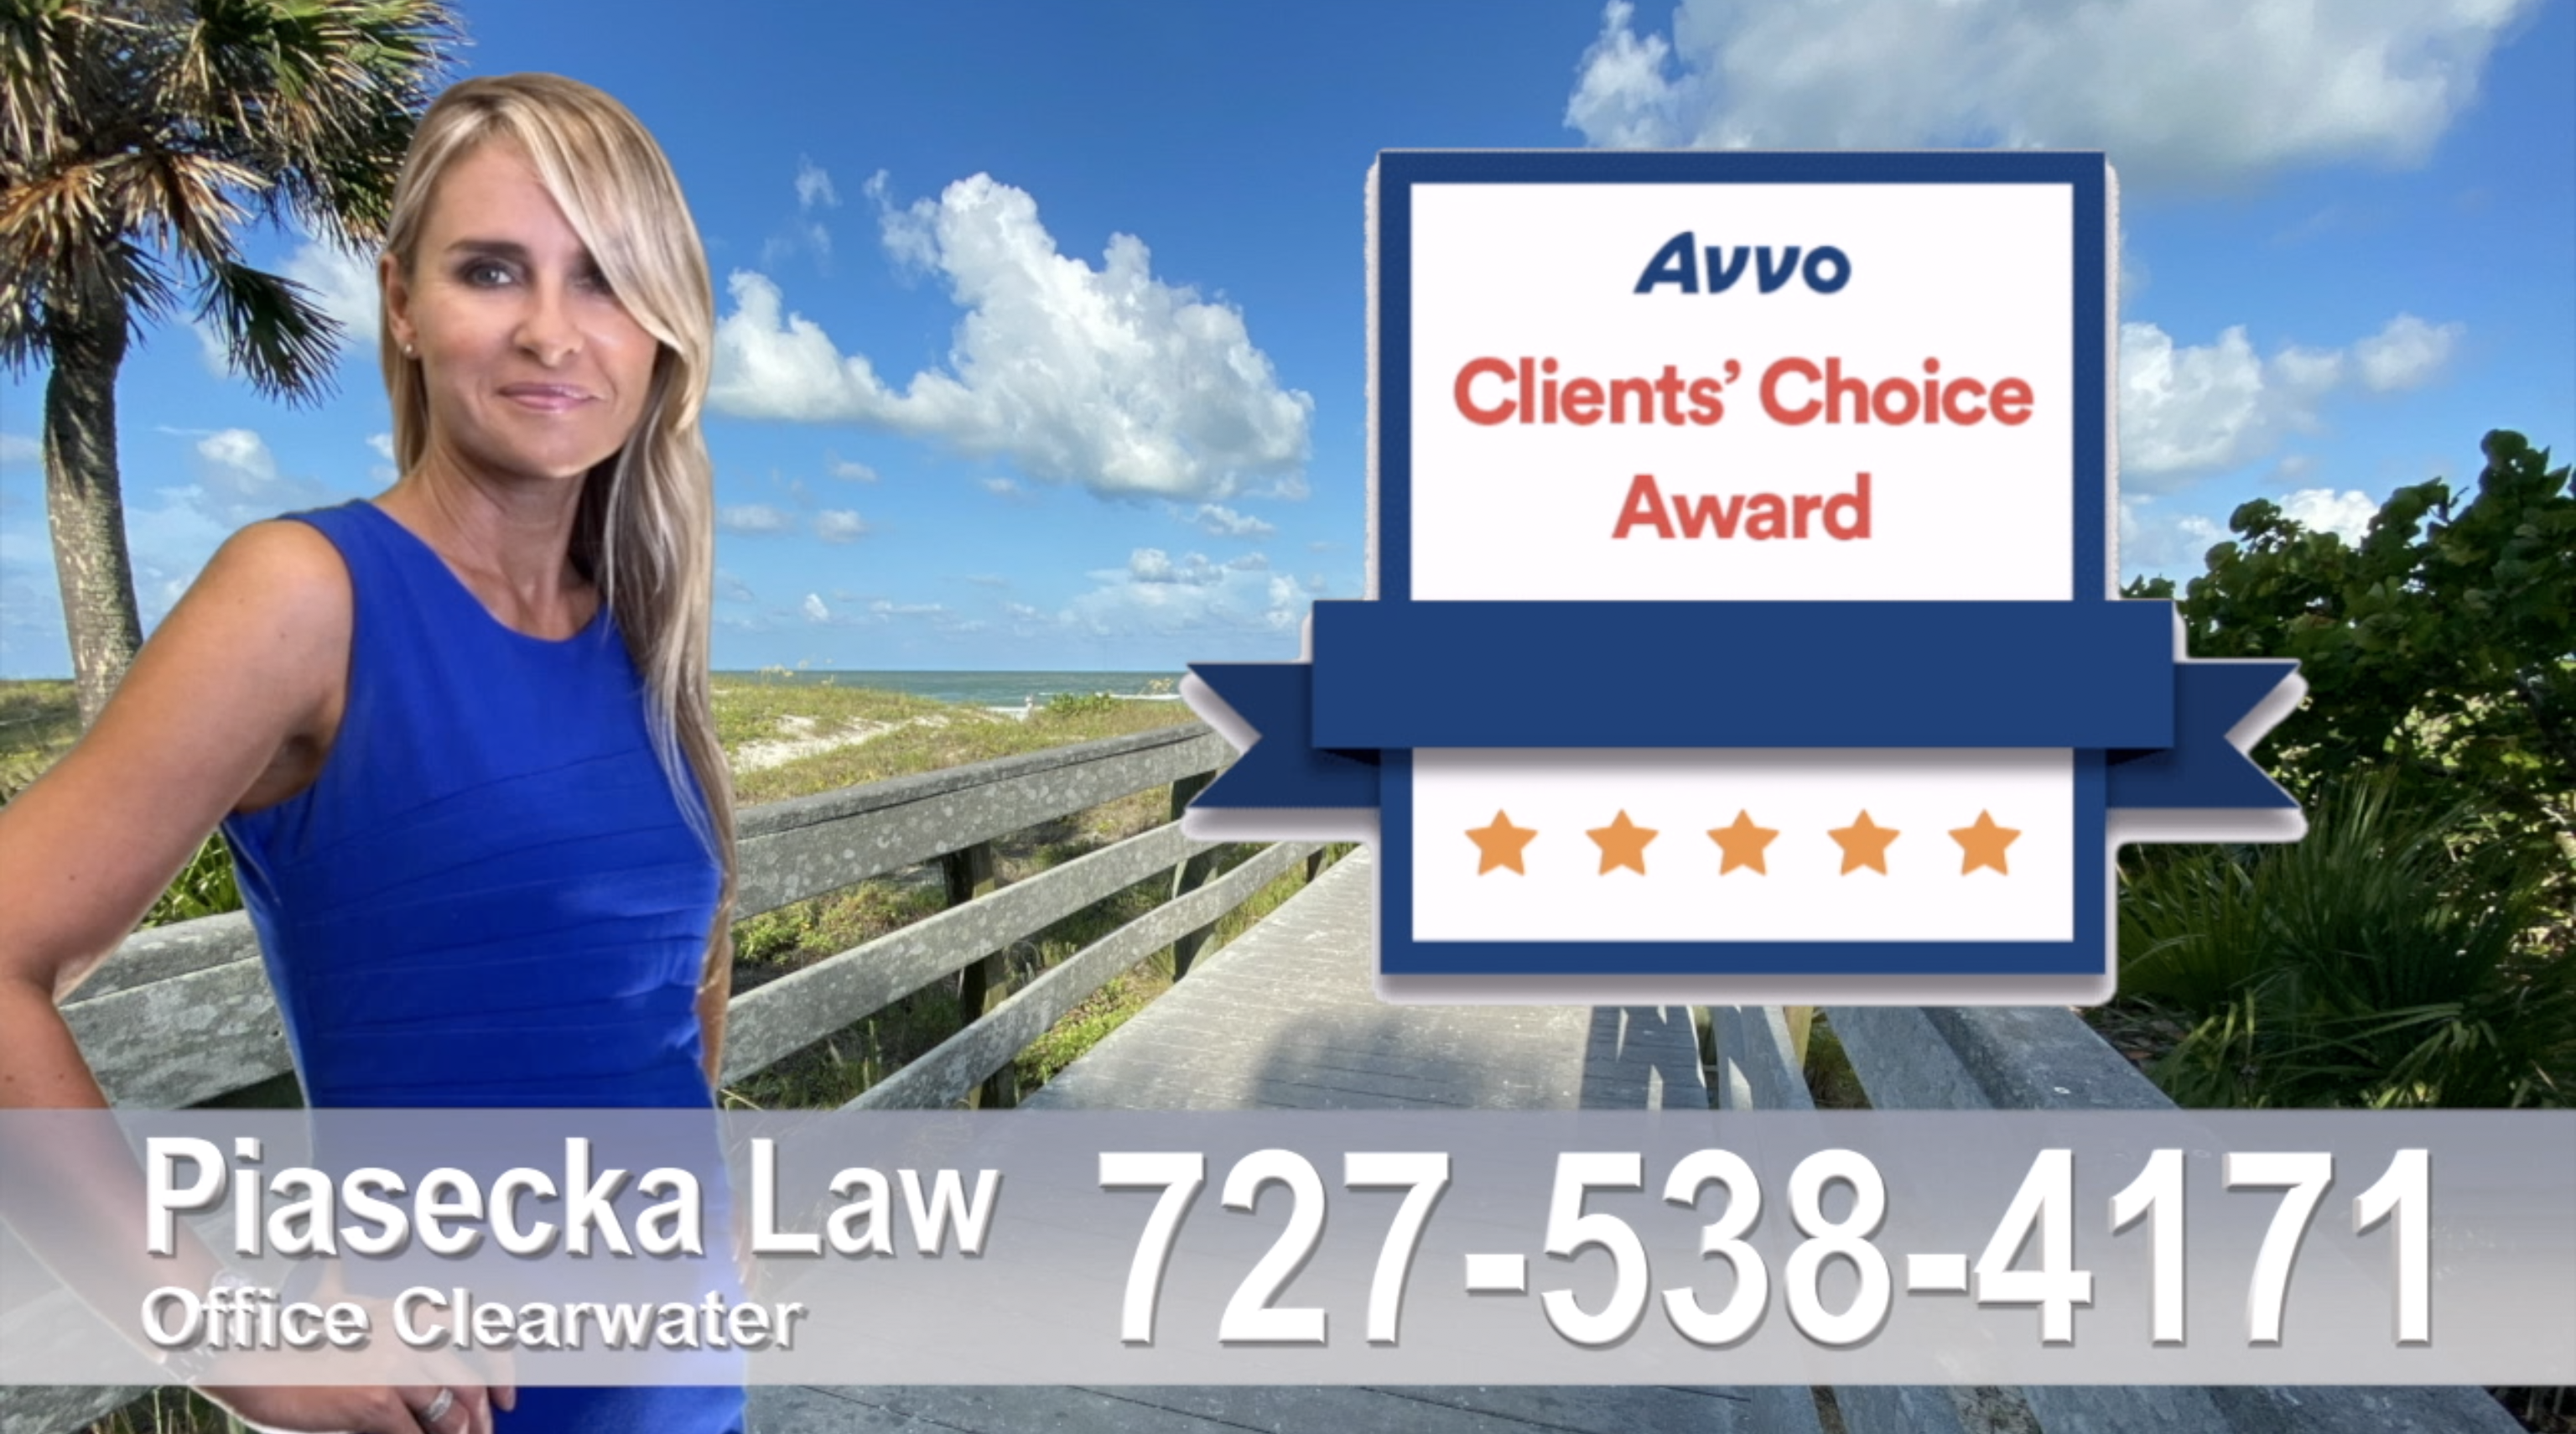 Polish, attorney, polish lawyer, clients reviews, clients, avvo, award